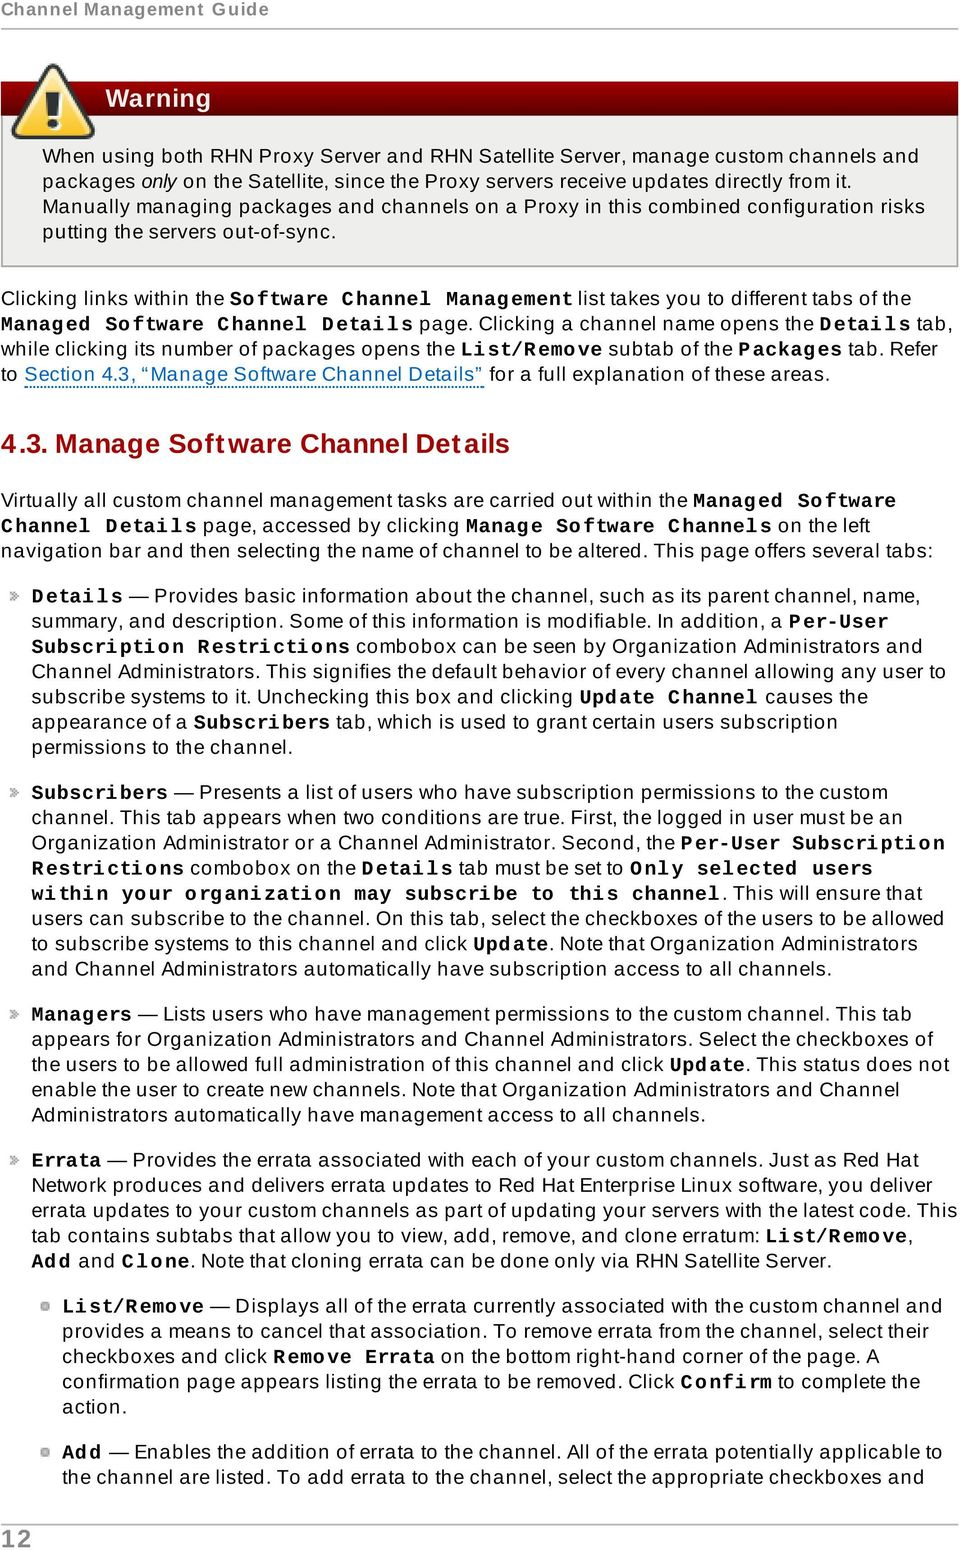 Clicking links within the So ftware C hannel Manag ement list takes you to different tabs of the Manag ed So ftware C hannel D etai l s page.